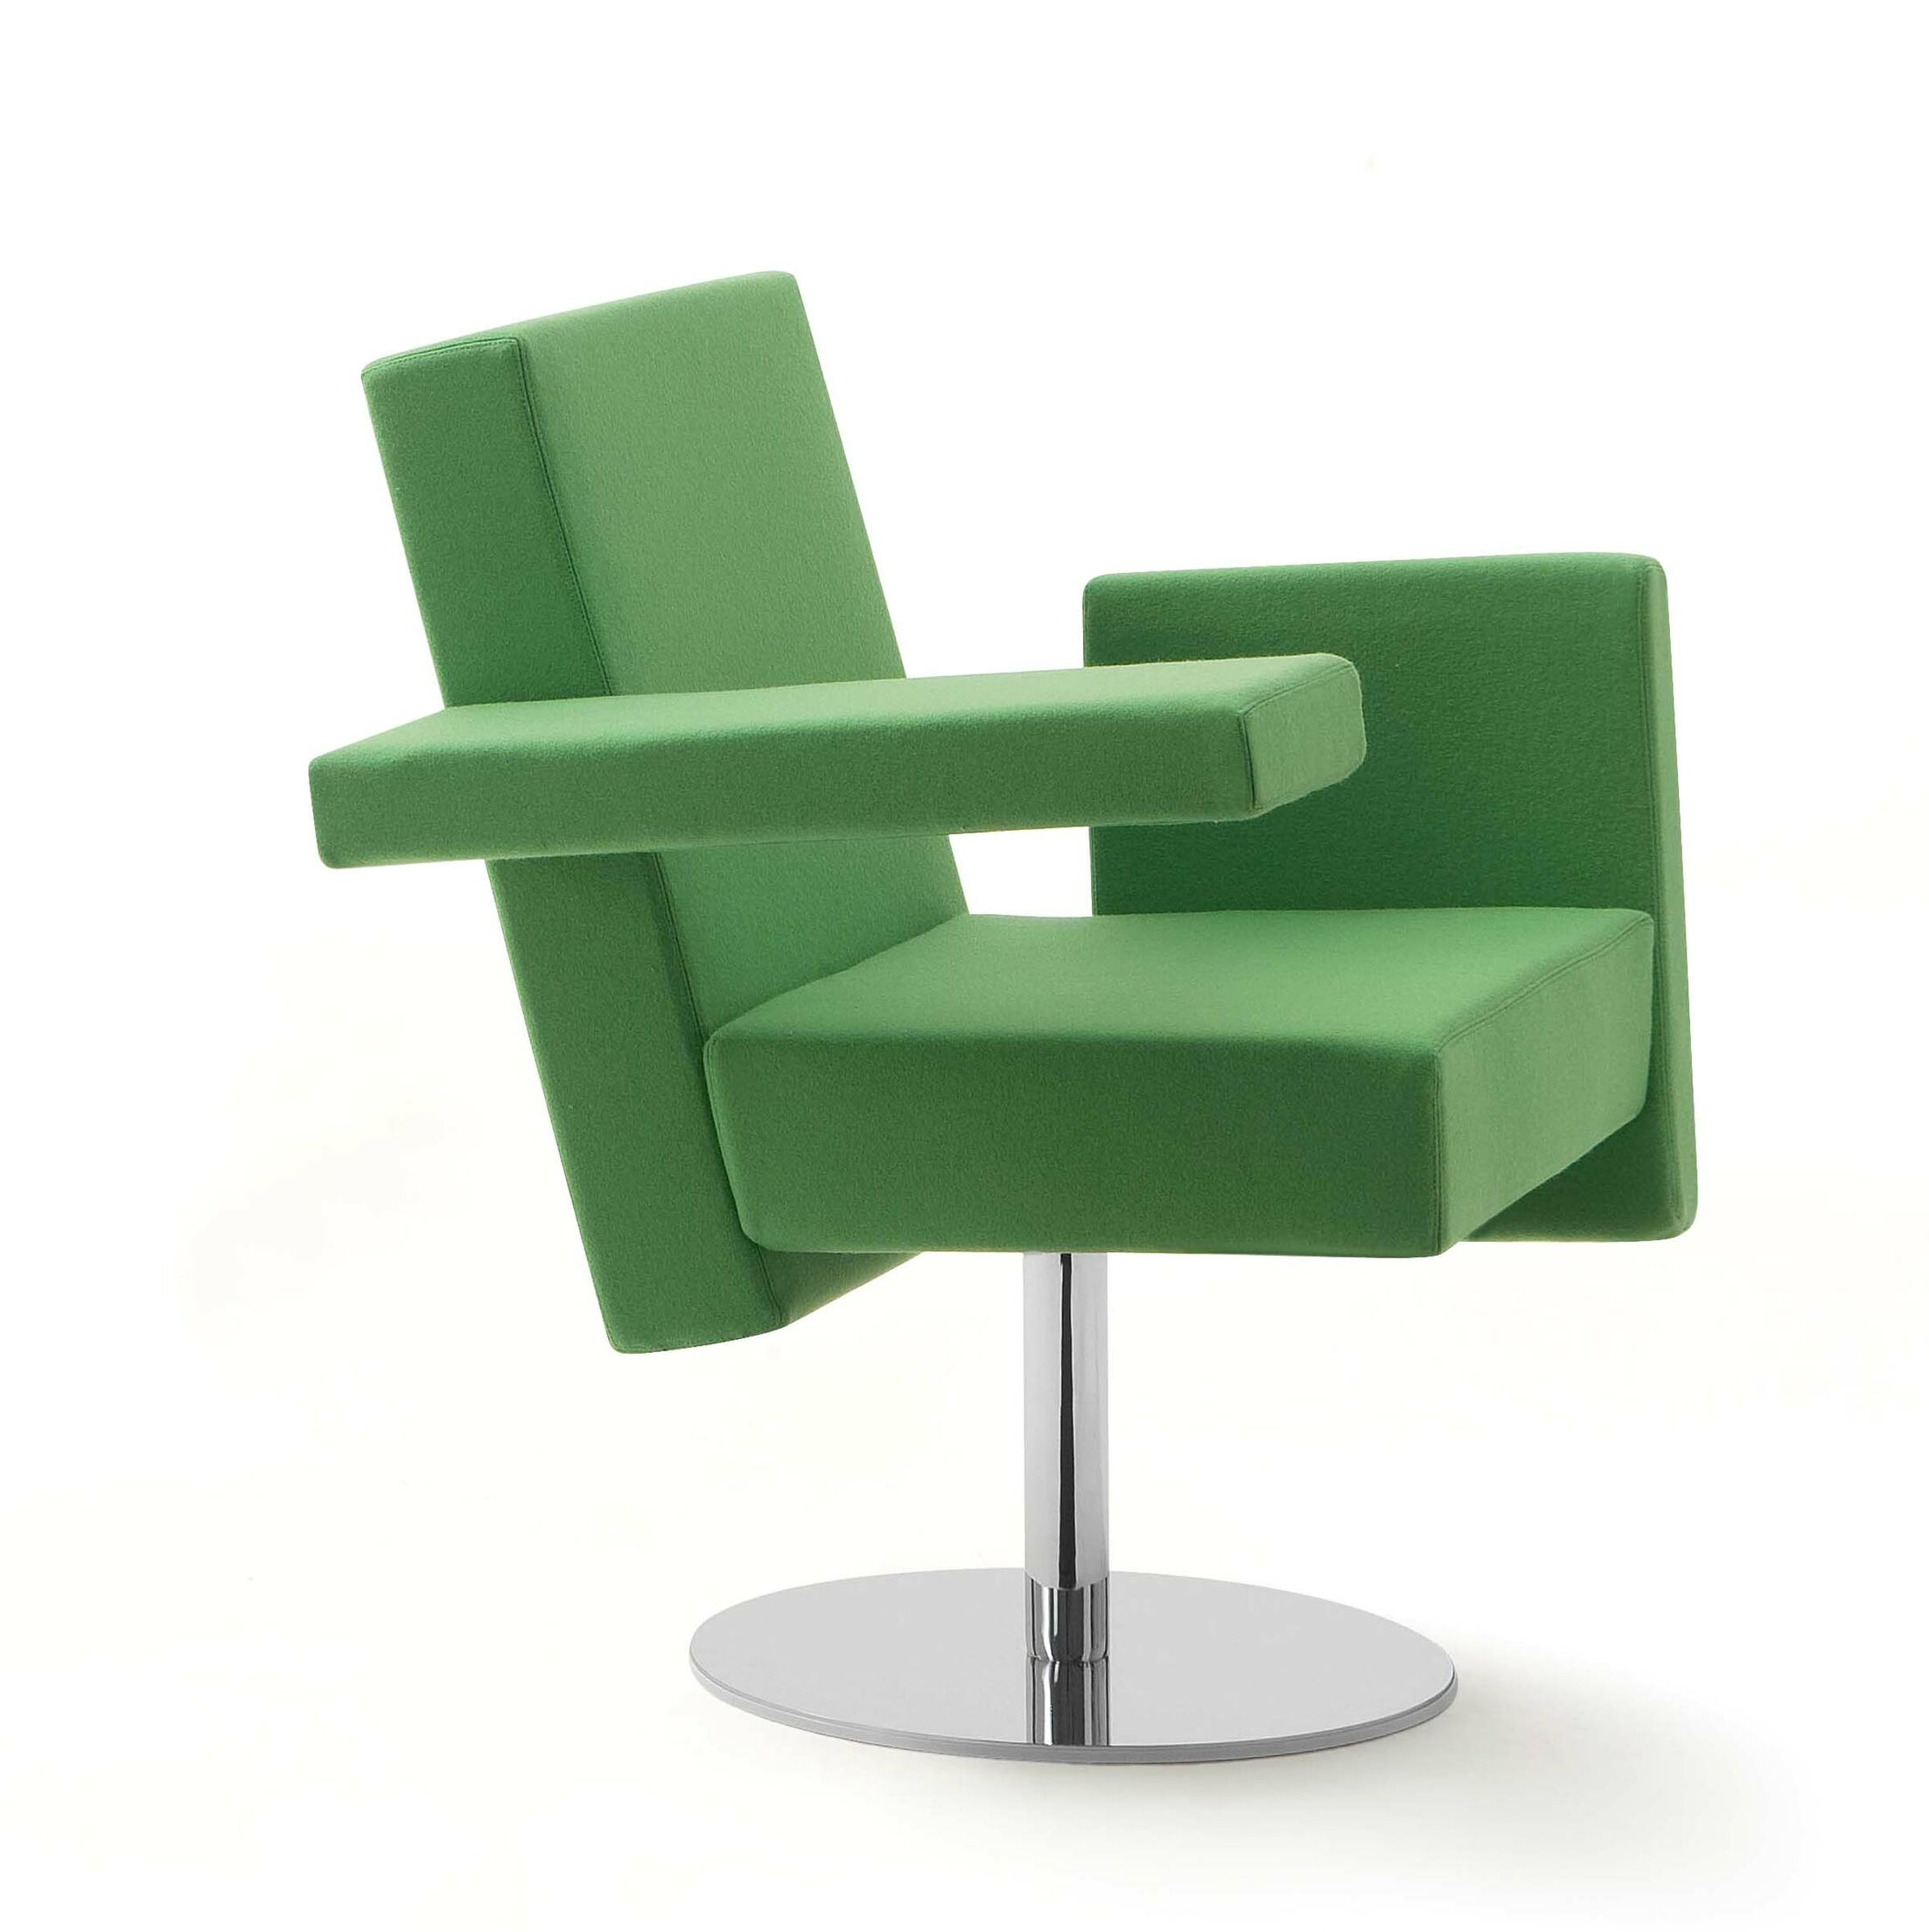 Meet Me Swivel Arm Guest Chair Upholstery: Momentum Fuse Fabric Cress, Finish: White